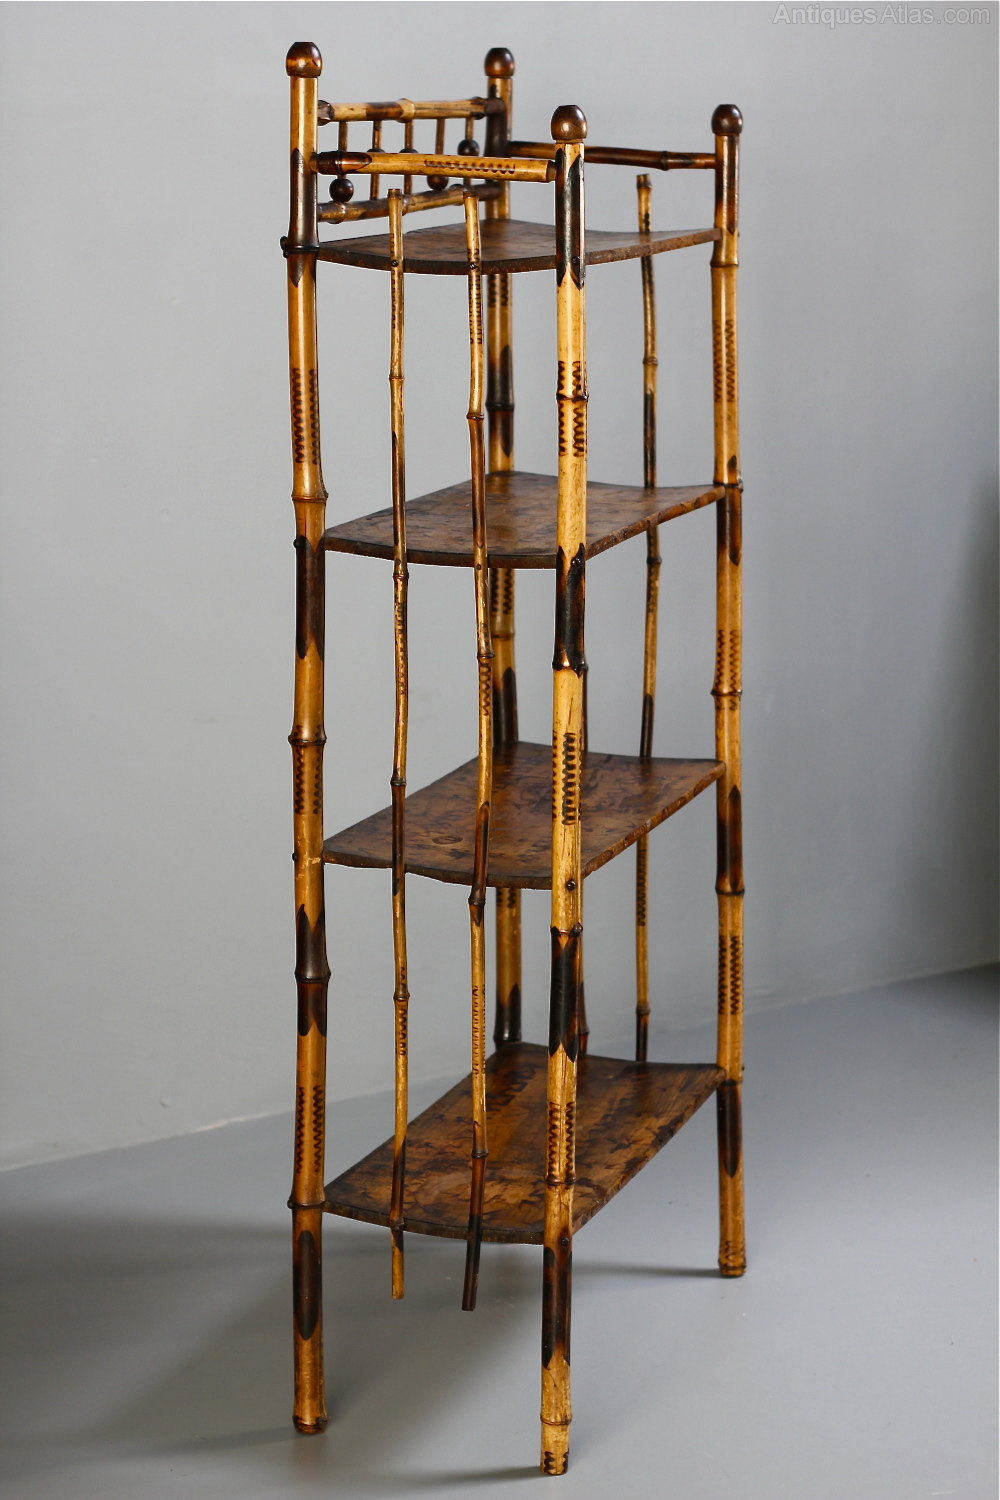 Bambus English Late Victorian Bamboo Floor Standing Shelves - Antiques Atlas